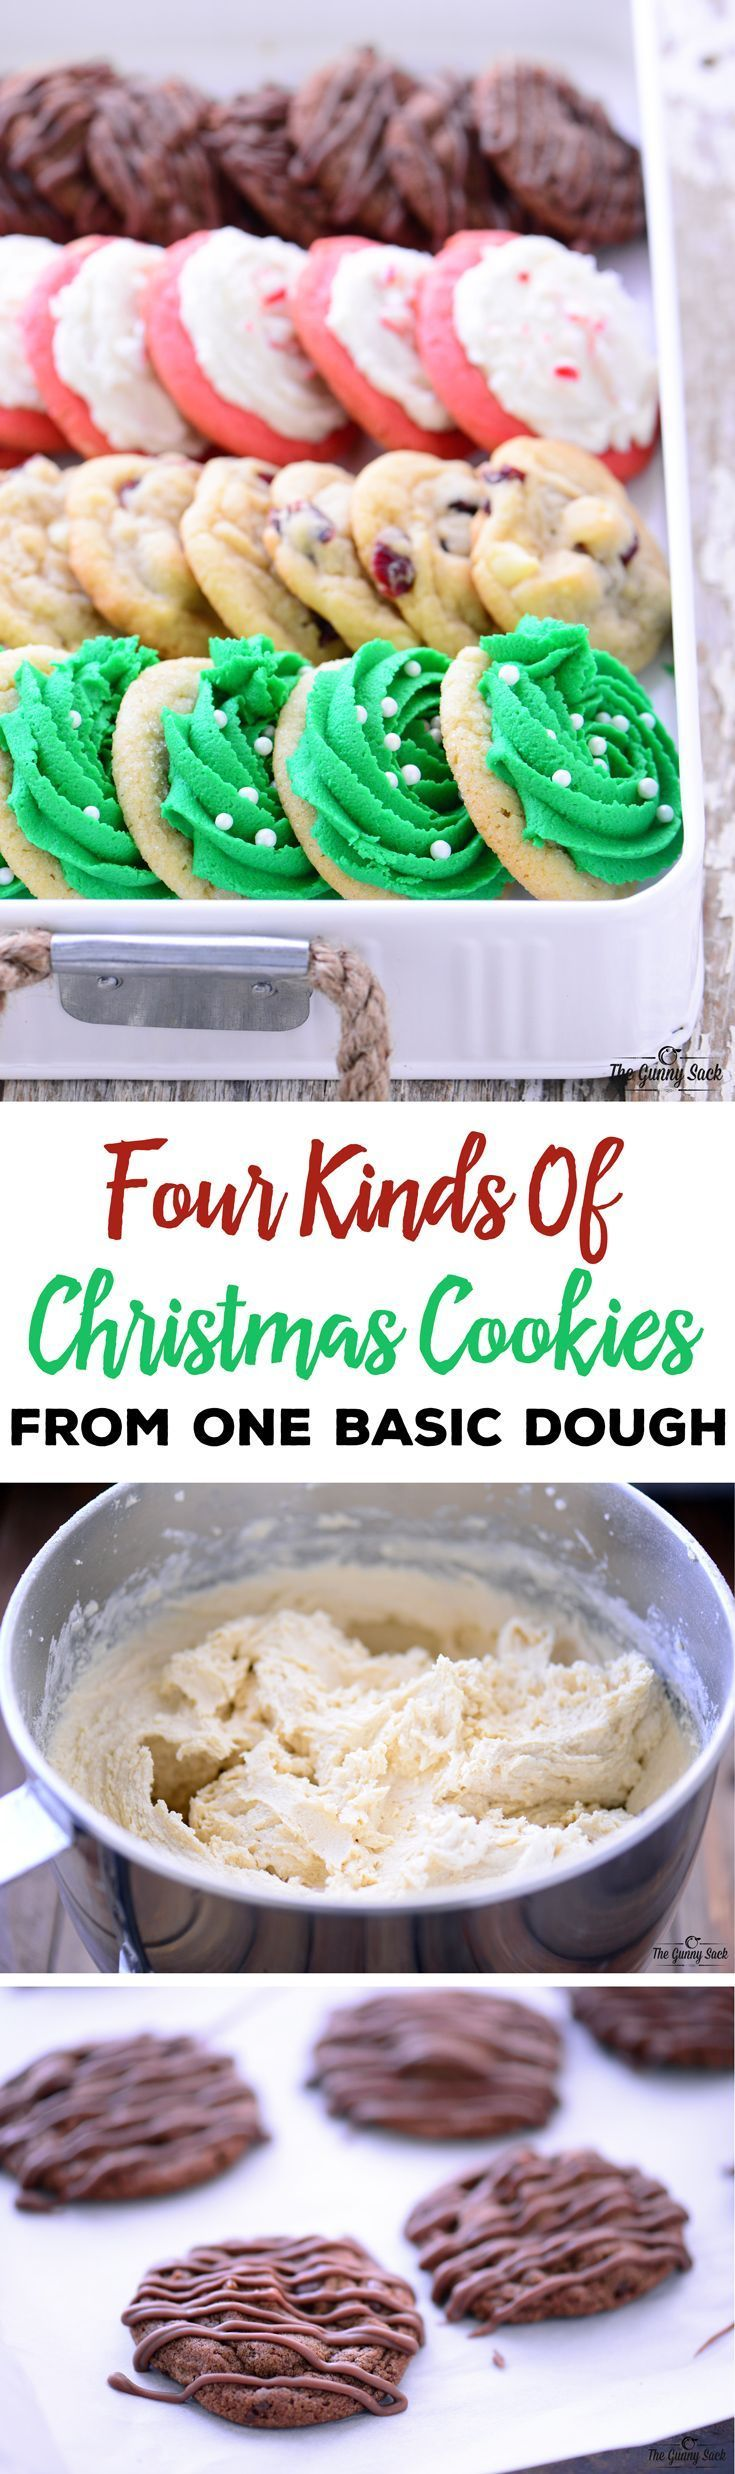 Kitchen hack for holiday baking: make four kinds of Christmas cookies from one basic dough recipe. Prepare the dough ahead of time, freeze and bake later.